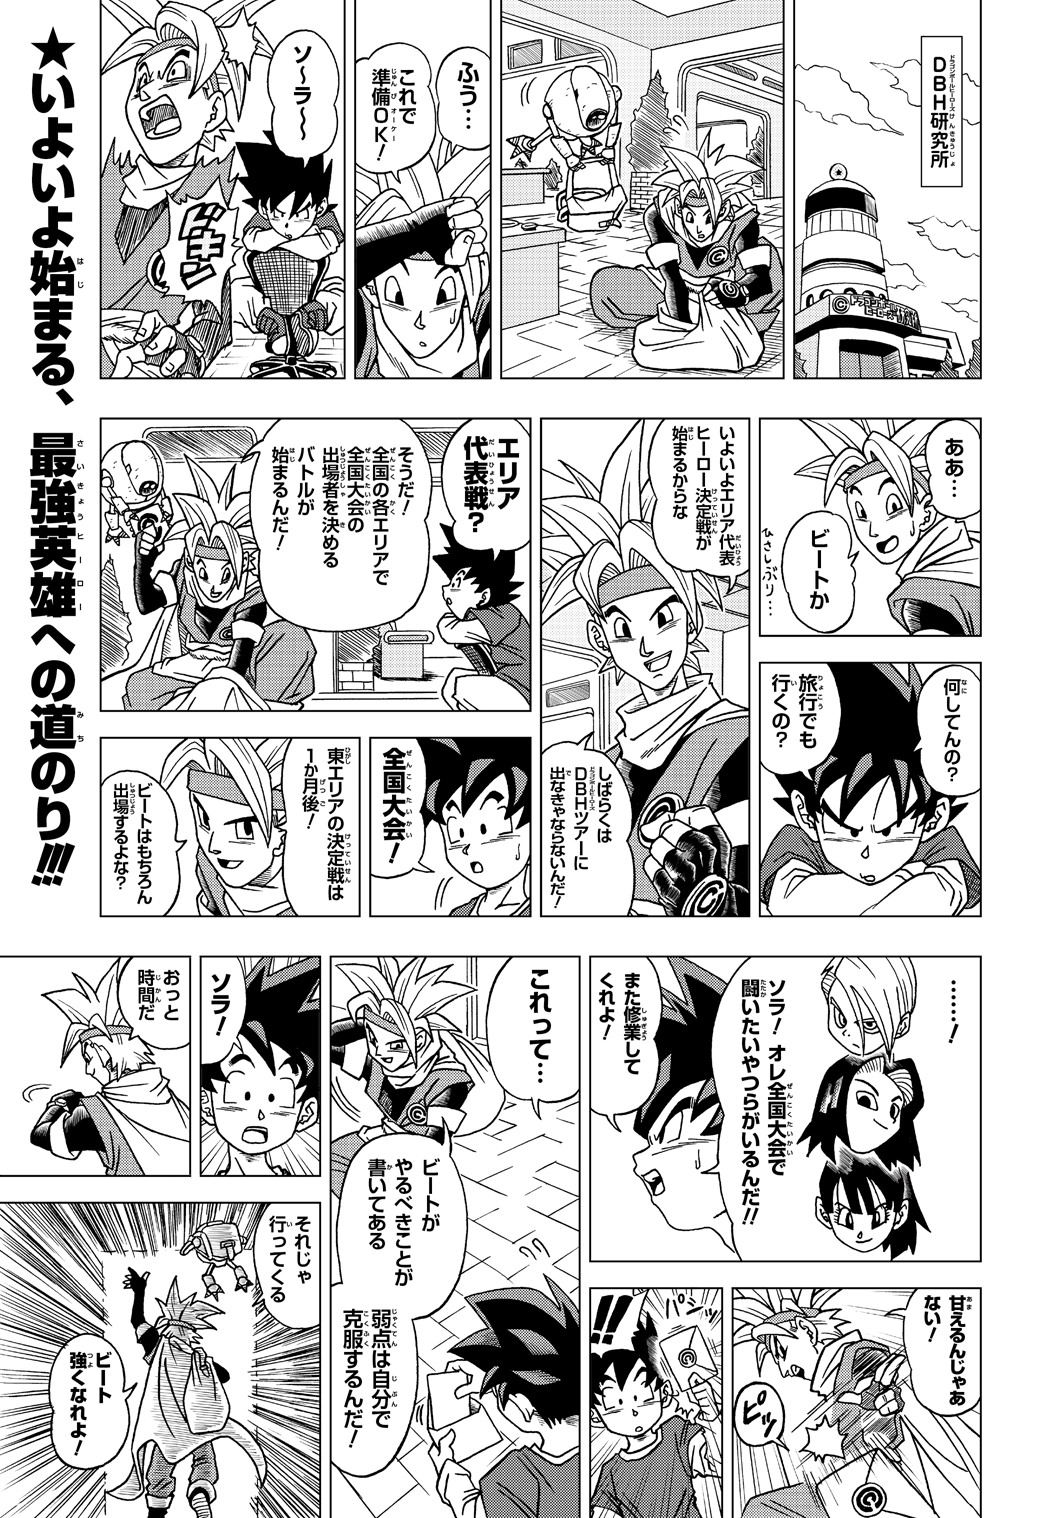 Dragon Ball Heroes Victory Mission Chapitre 009